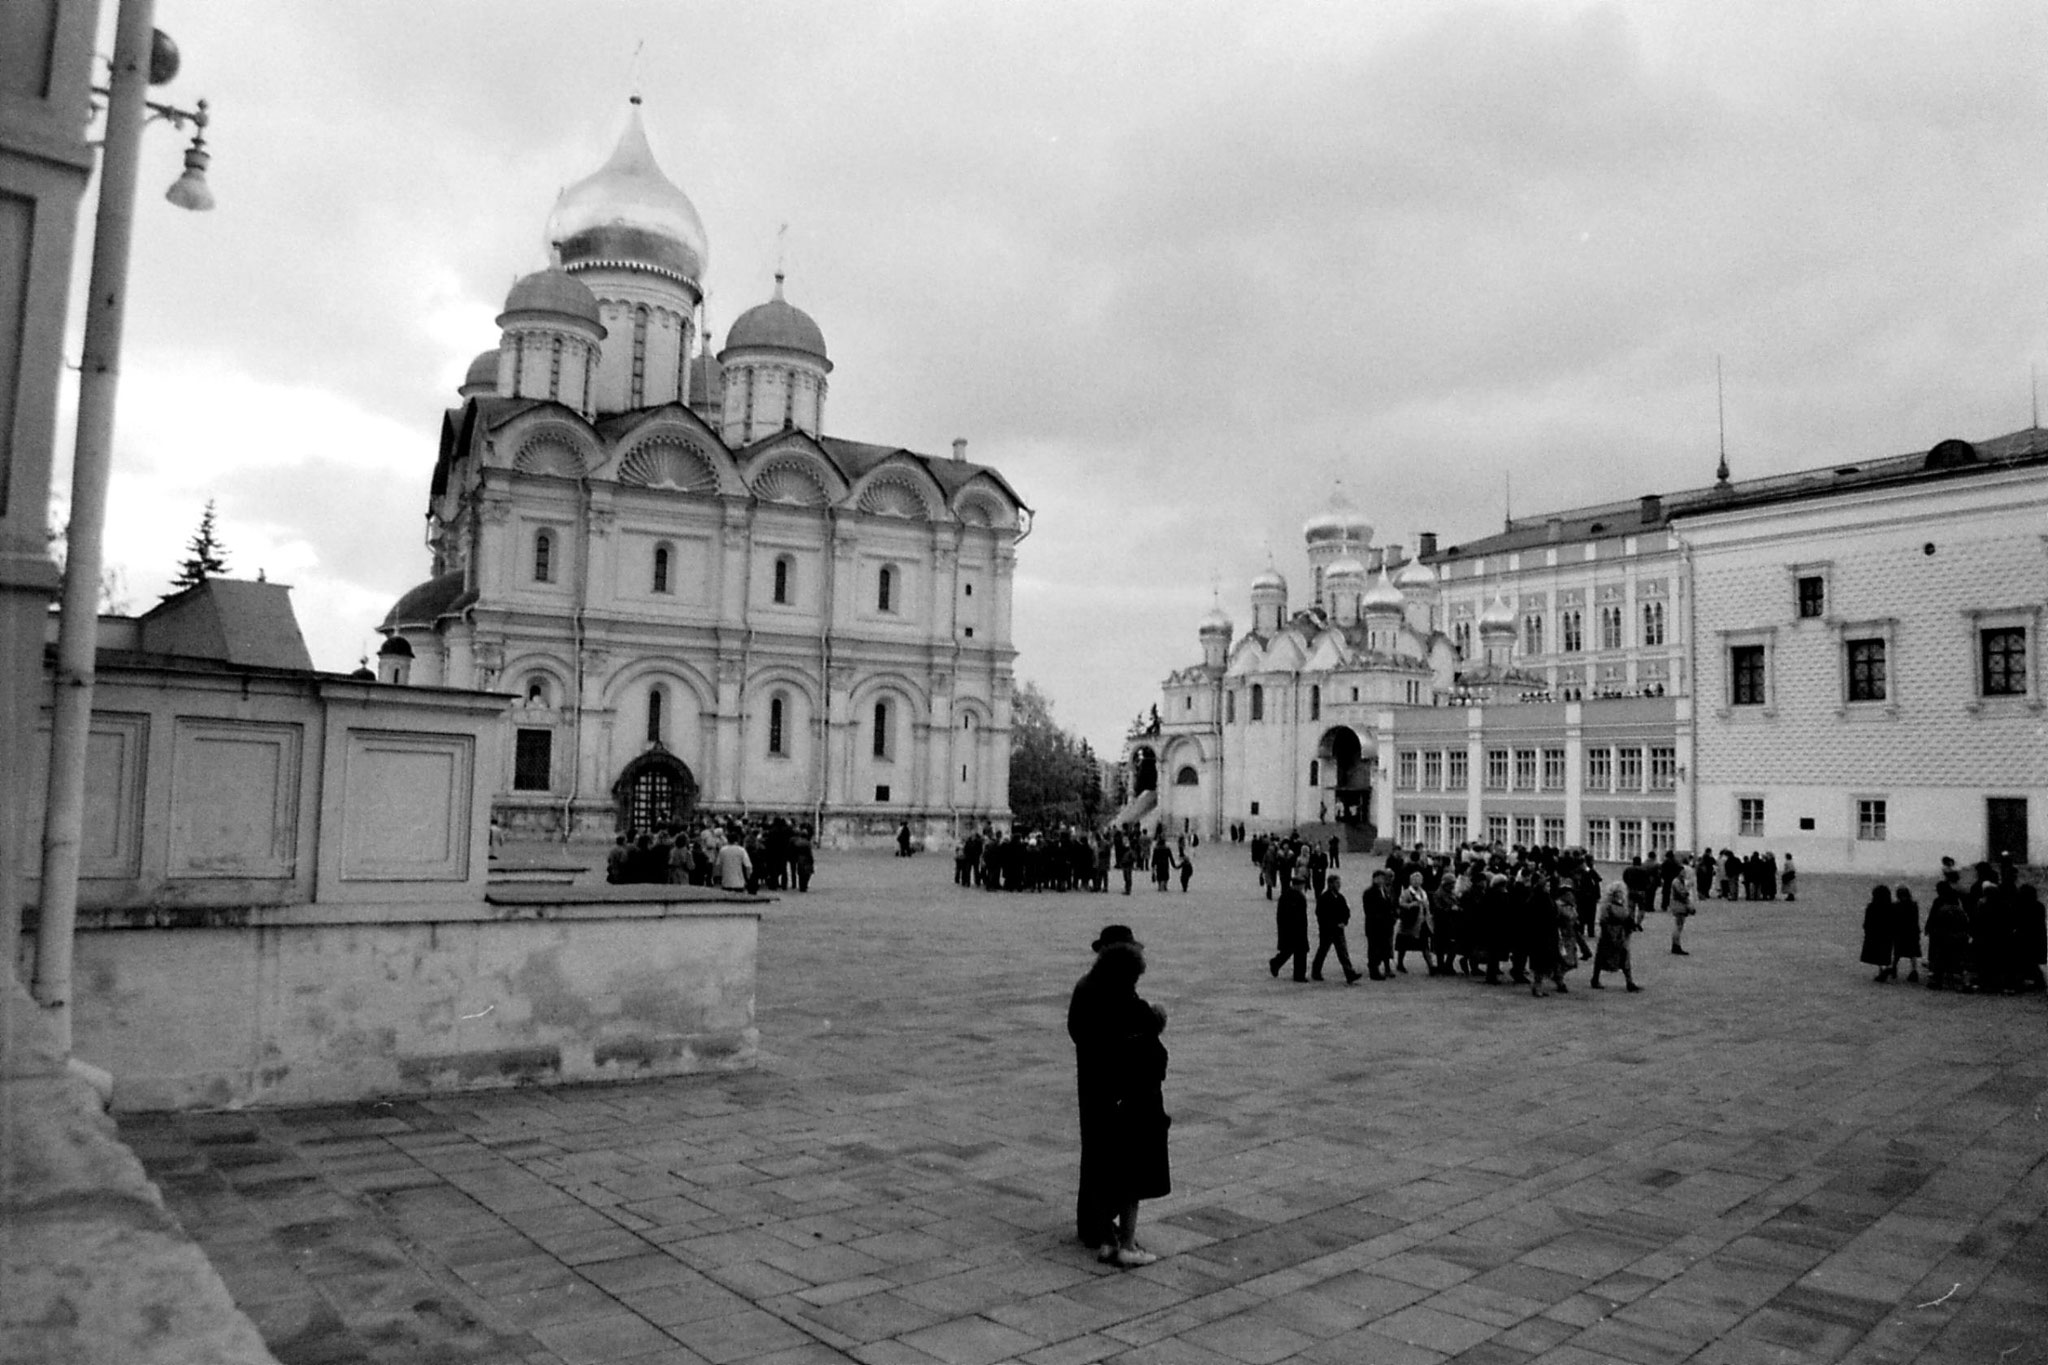 17/10/1988: 32: Kremlin cathedral square